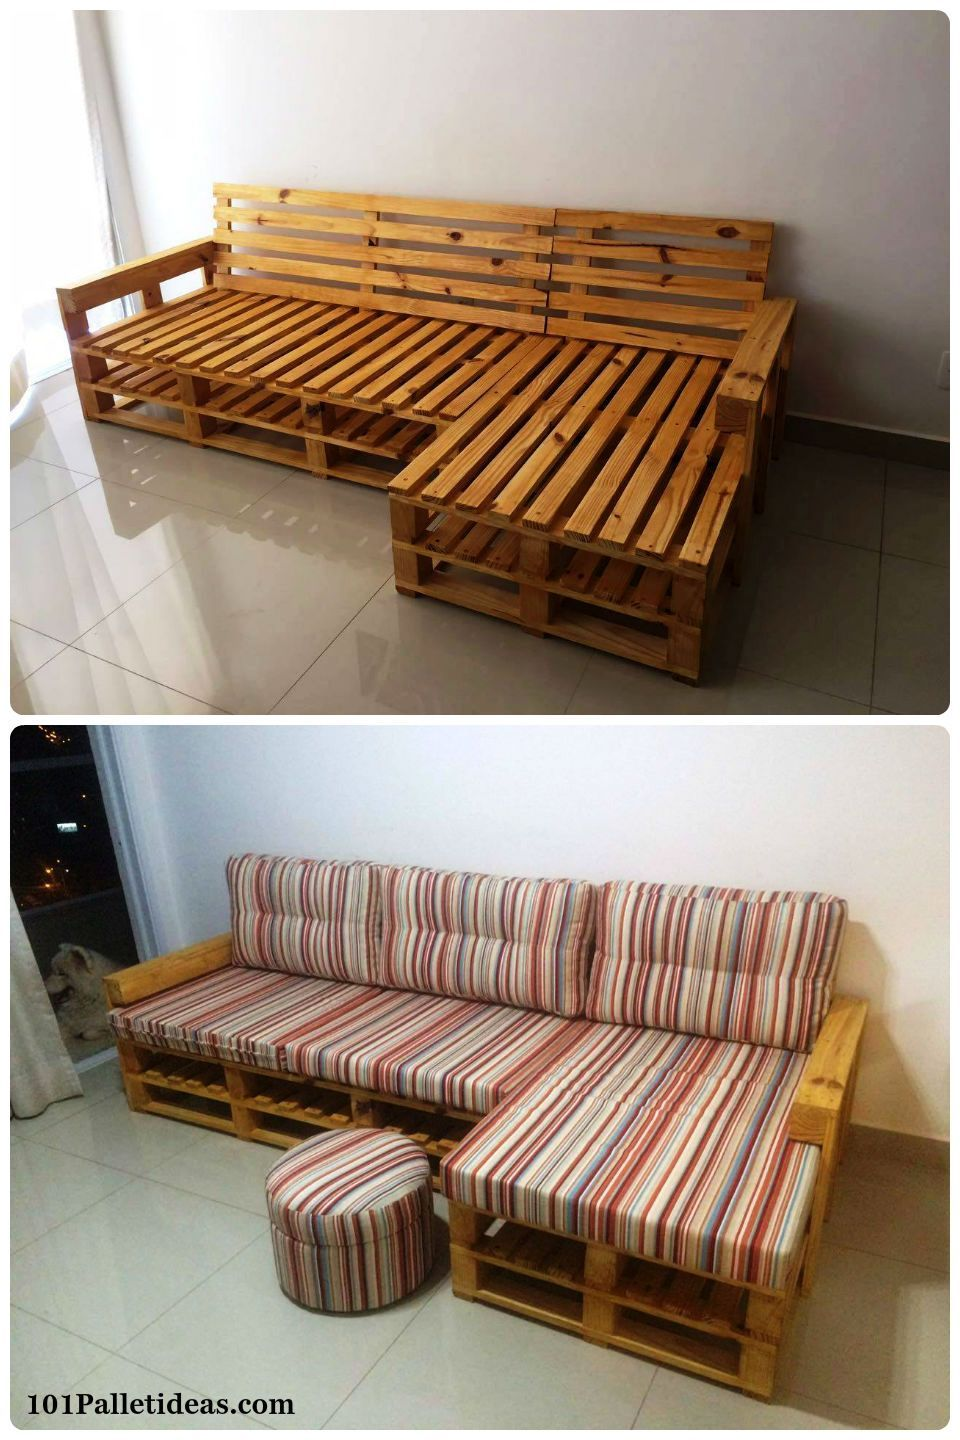 Diy Sofa From Pallets Cincinnati 20 Pallet Ideas You Can For Your Home House Furniture L Shape Couch Frame 99 Mas